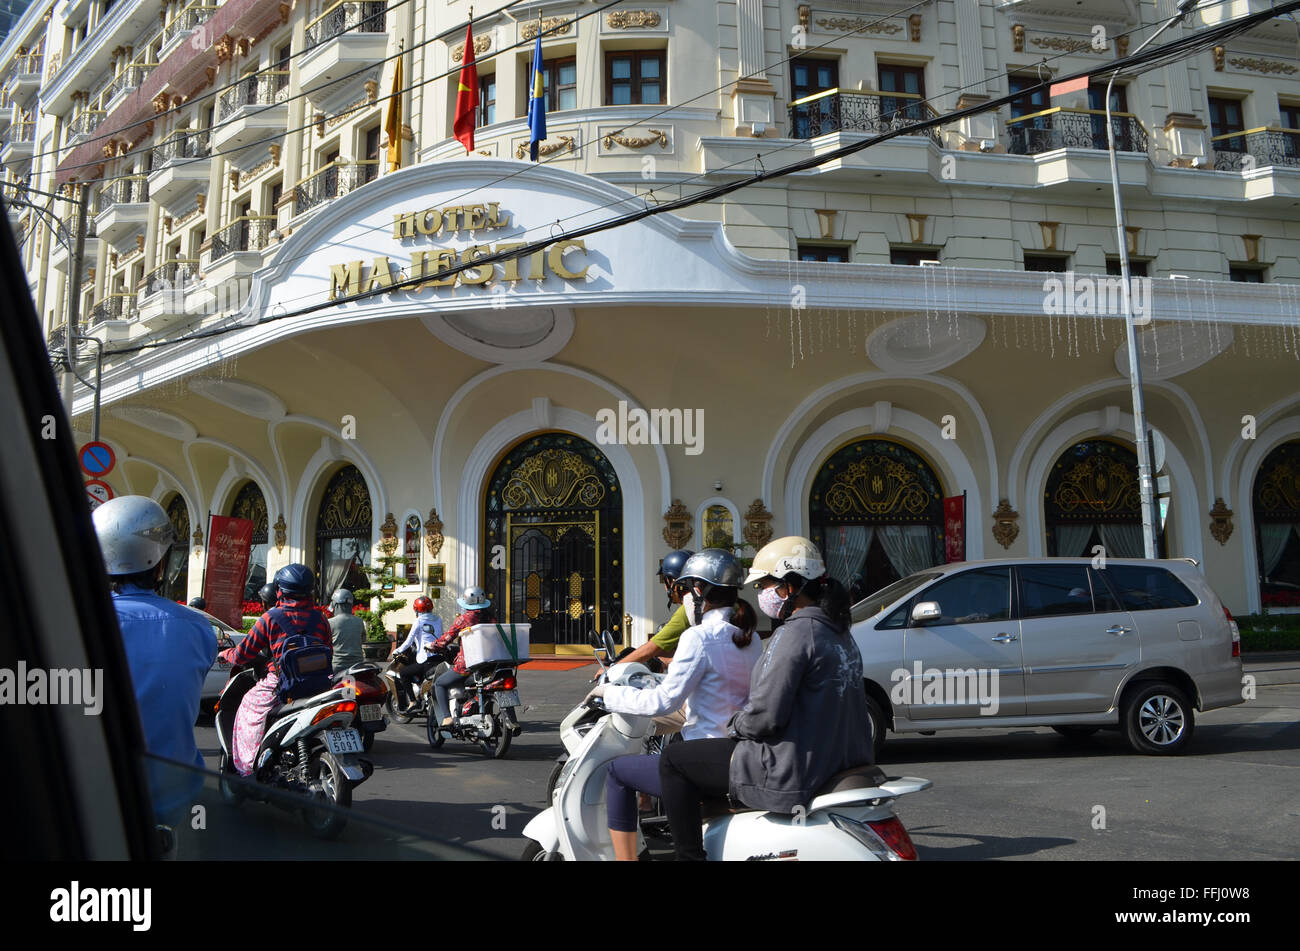 Saigon Viet Nam, Free China 900A. French  influence from 1858 -1955,and finallyUSA1975.Bikes preferred transport. - Stock Image